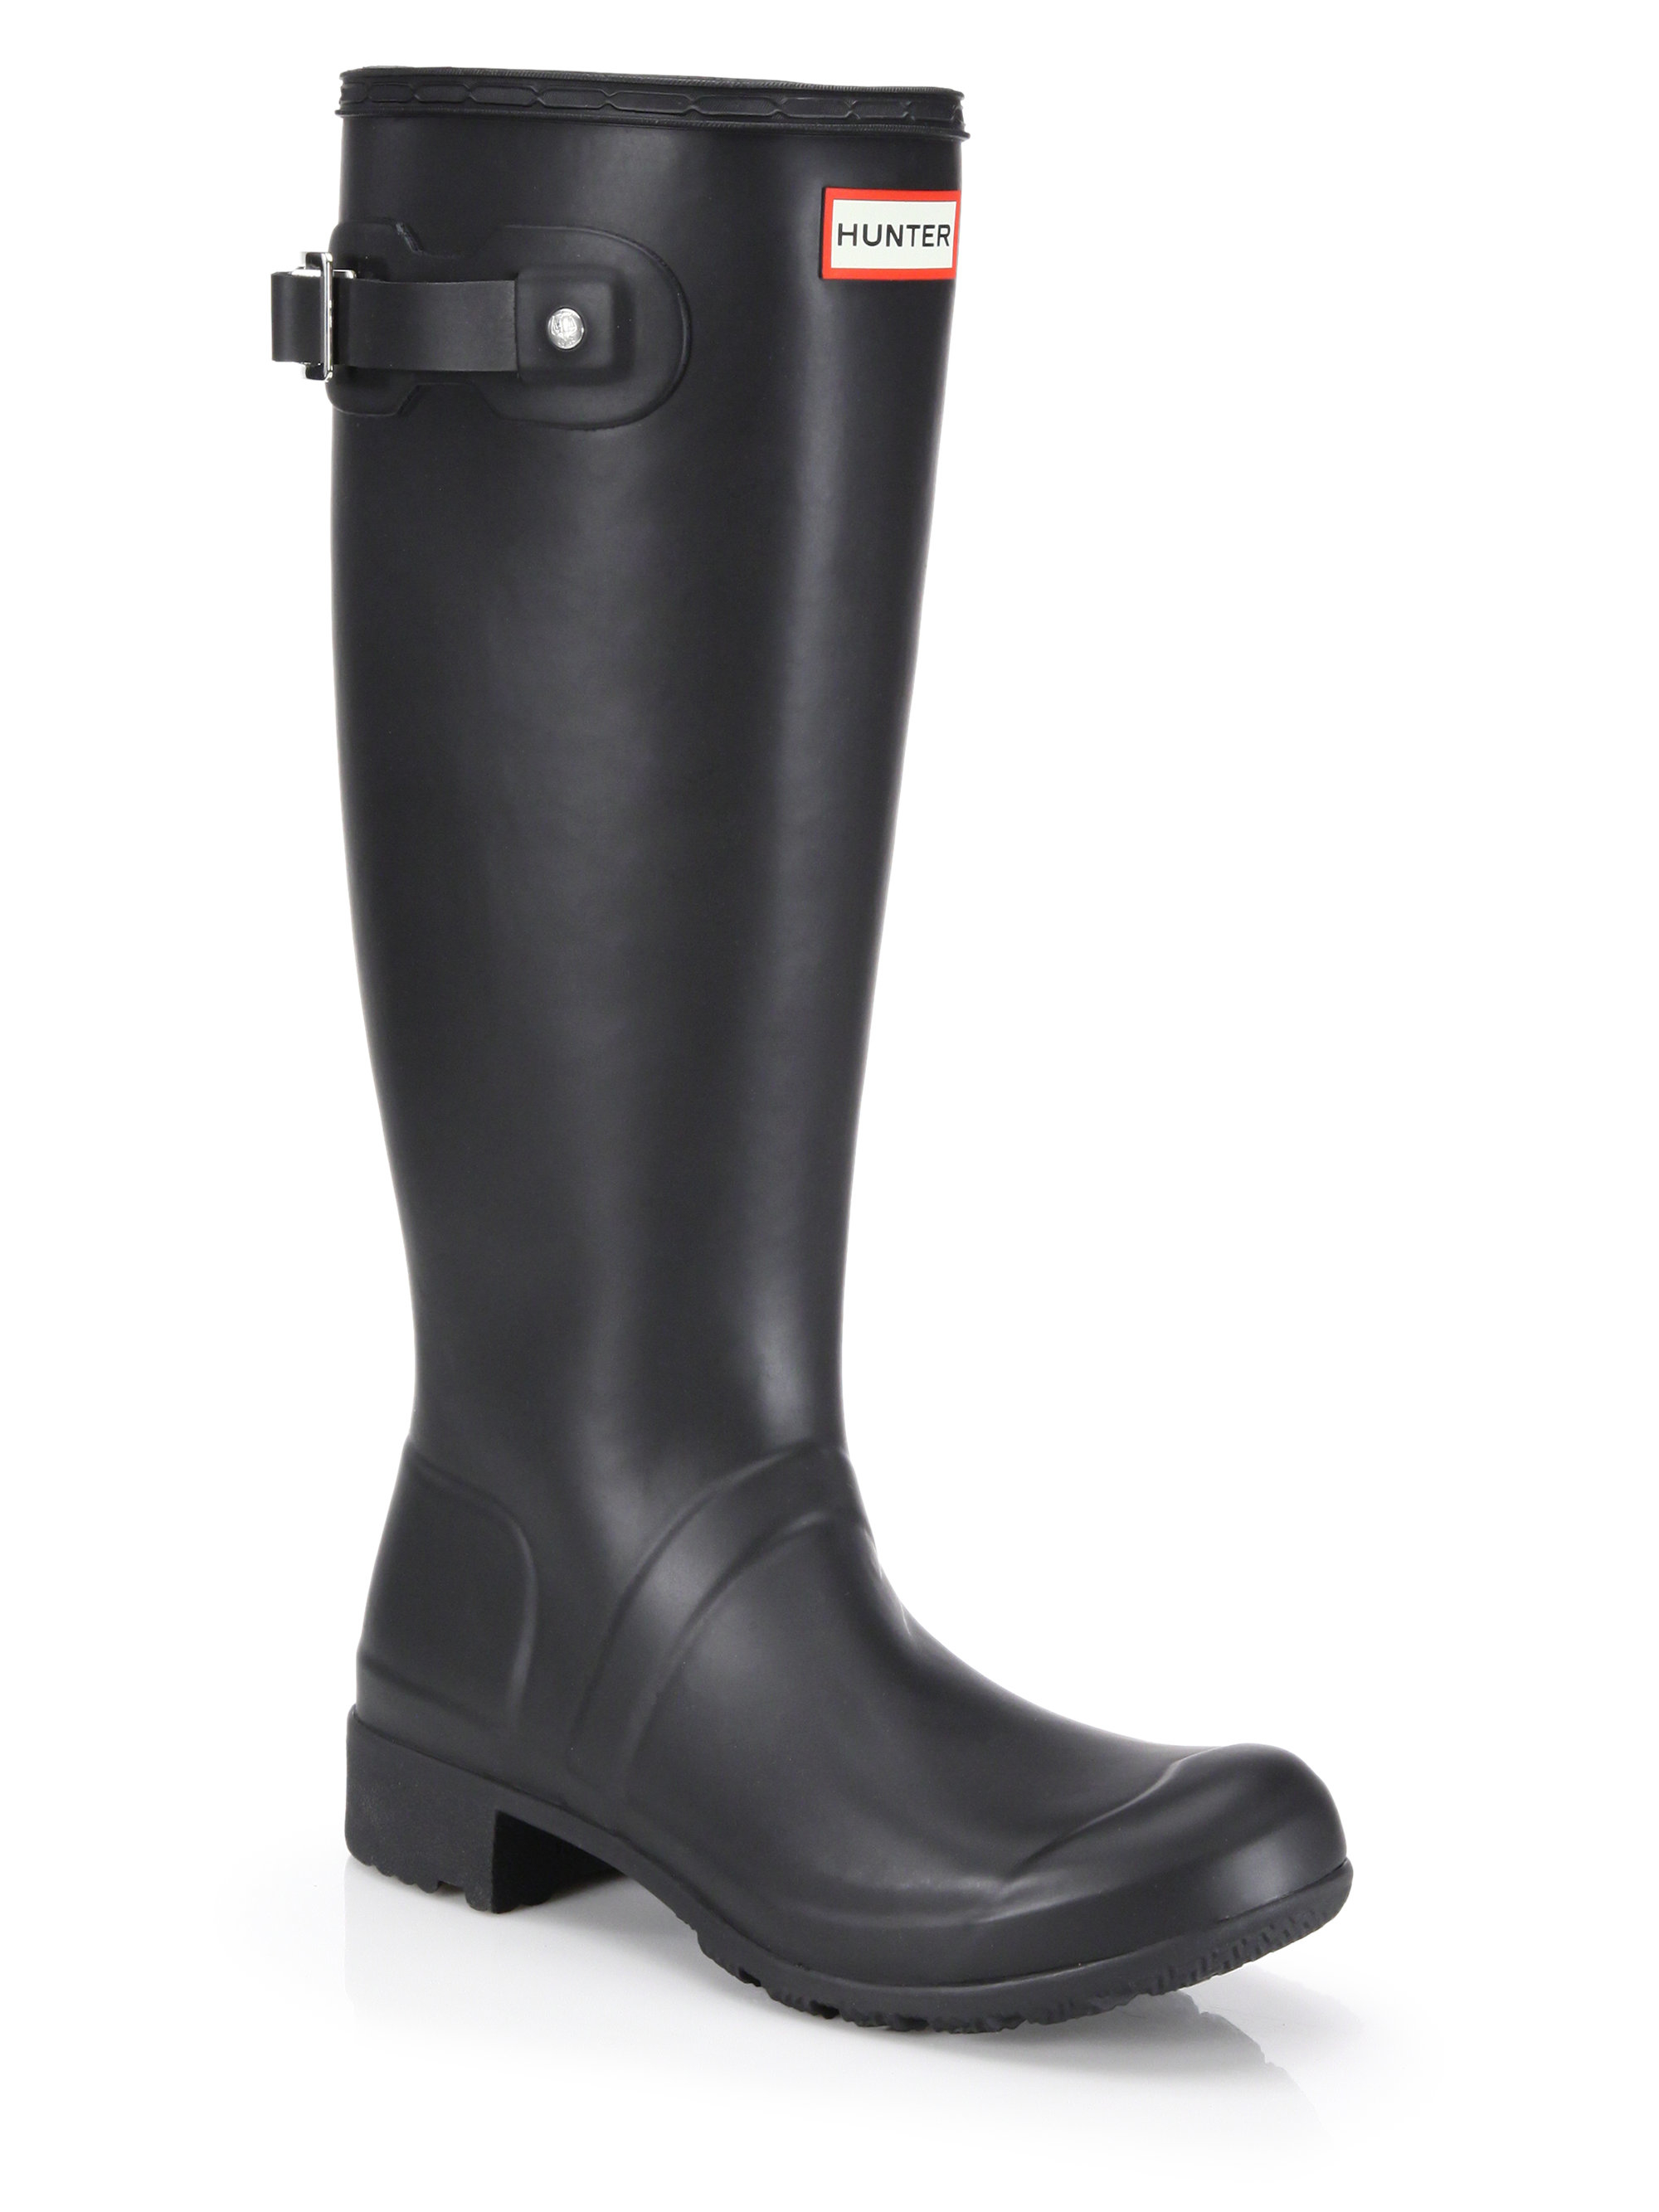 Hunter Original Tour Rain Boots in Black